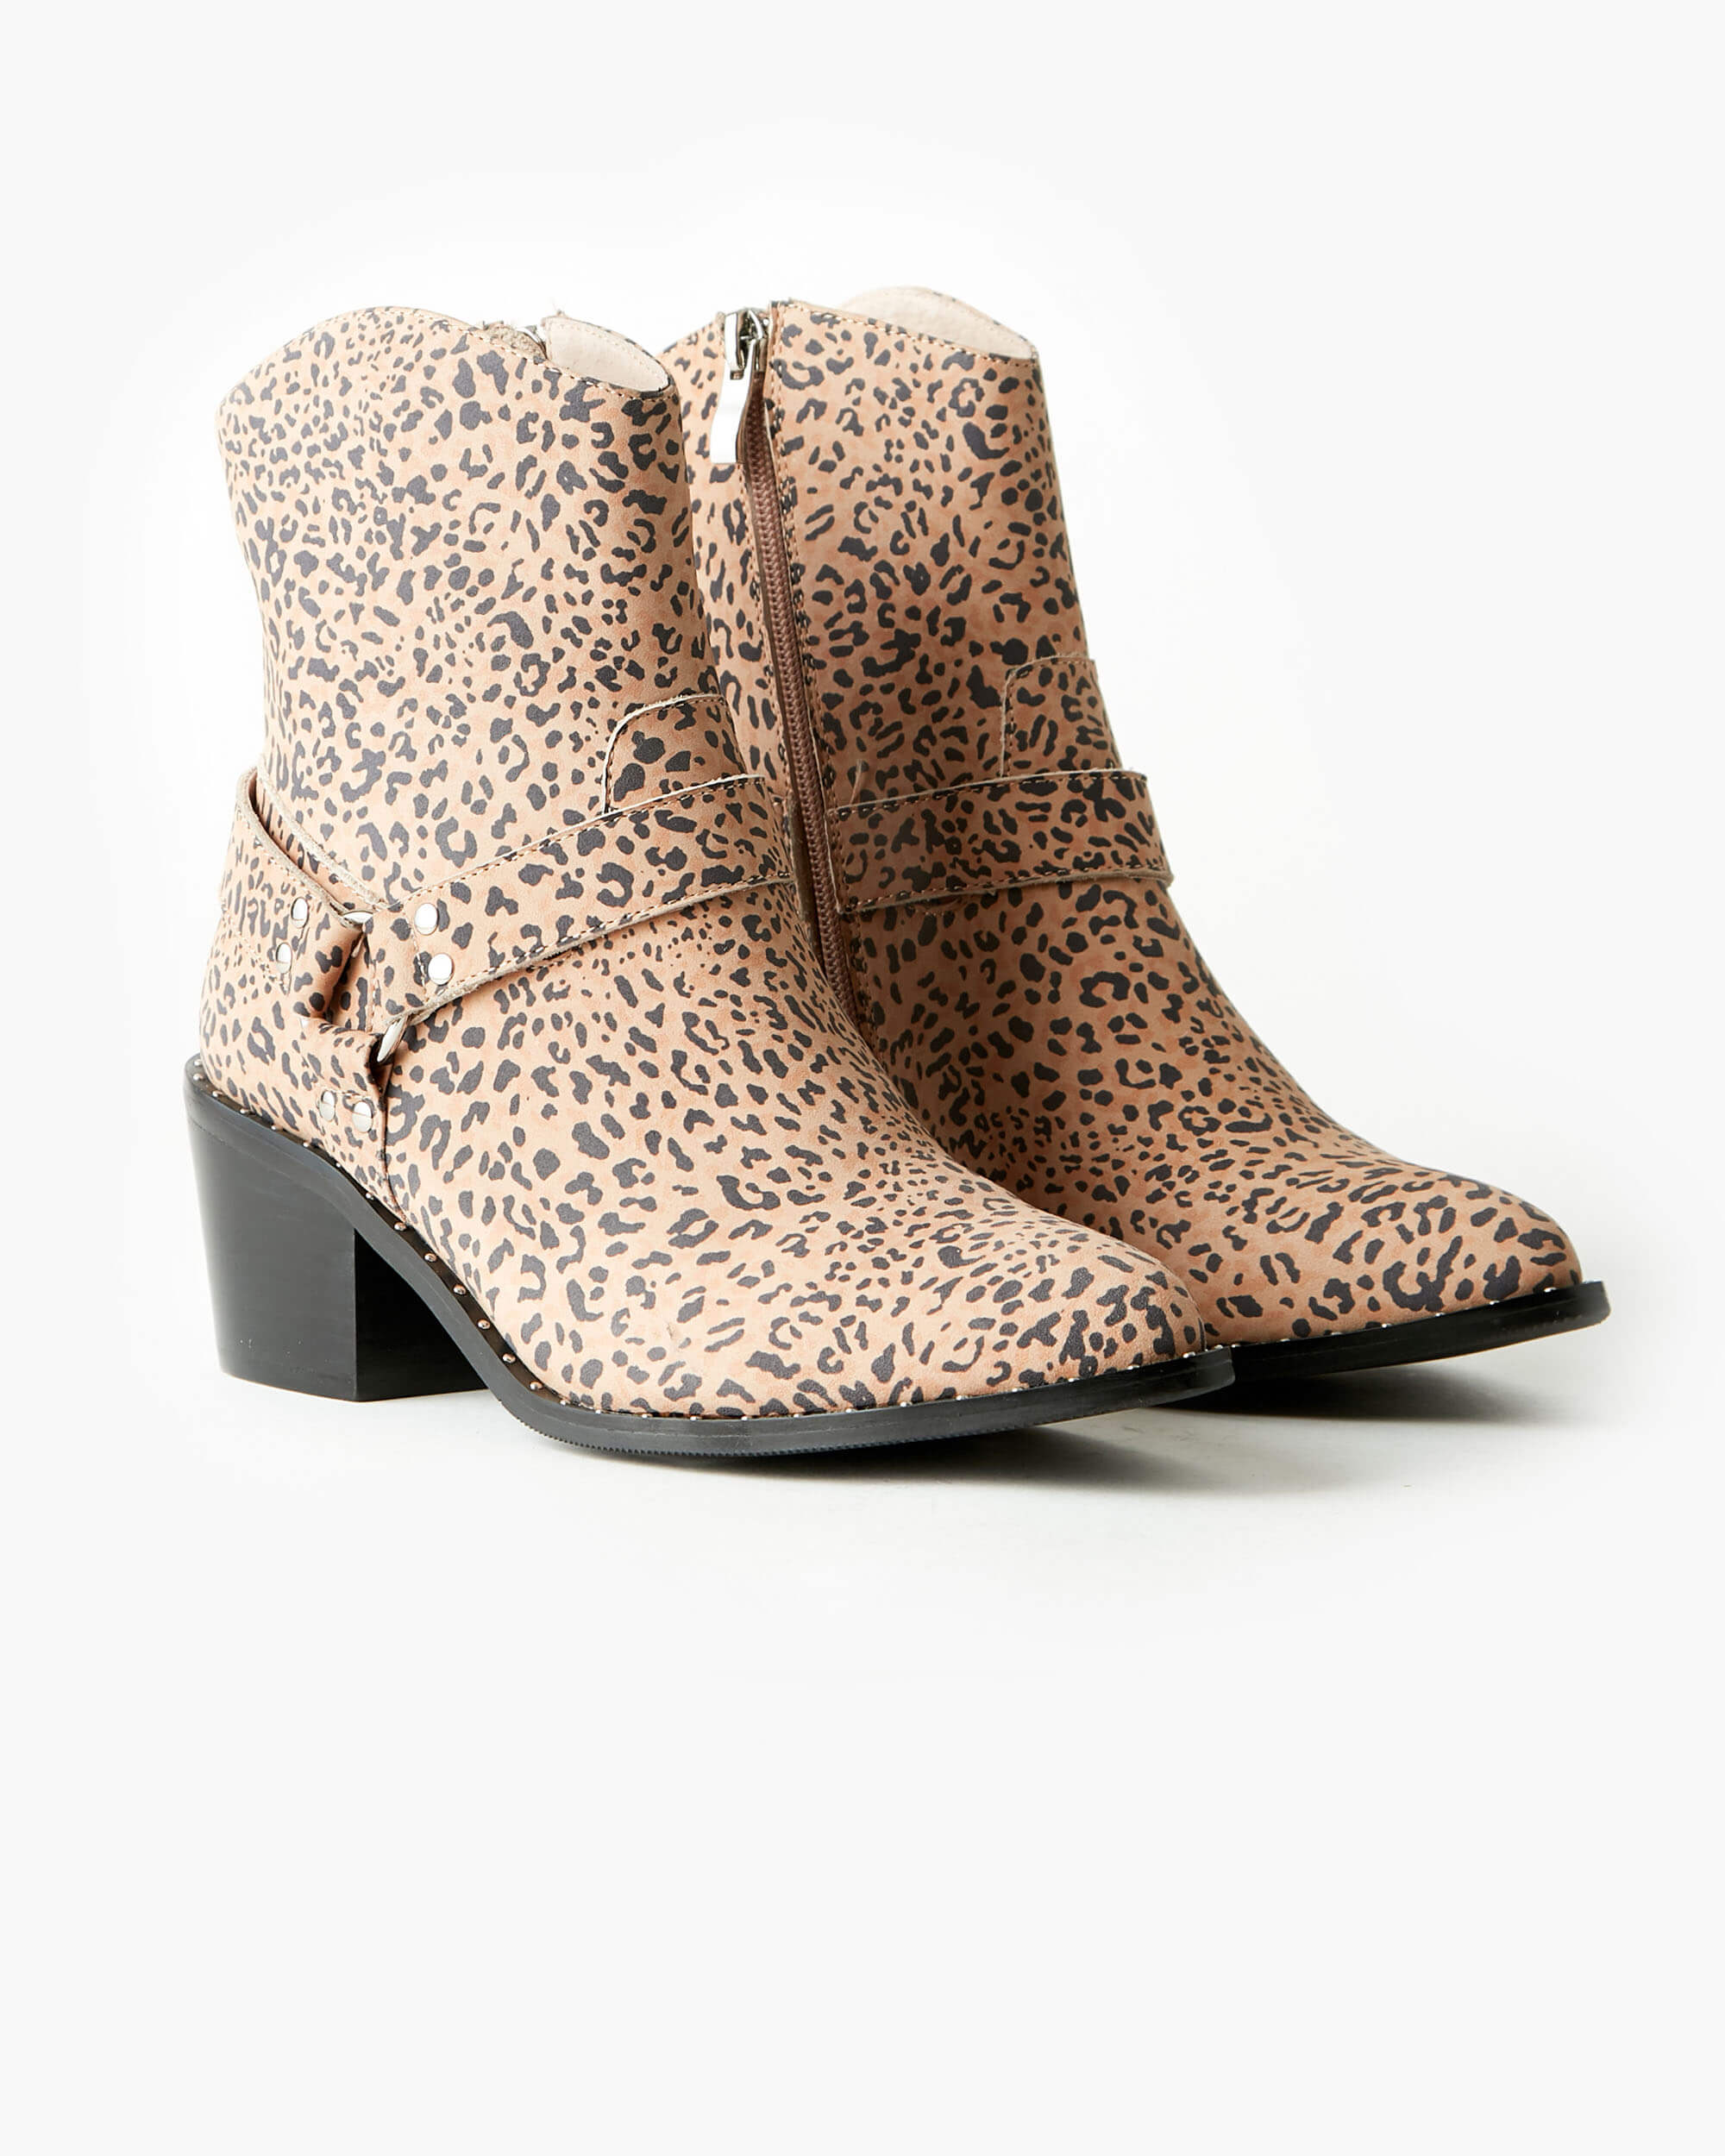 Western Leather Ankle Boot - Tan Leopard